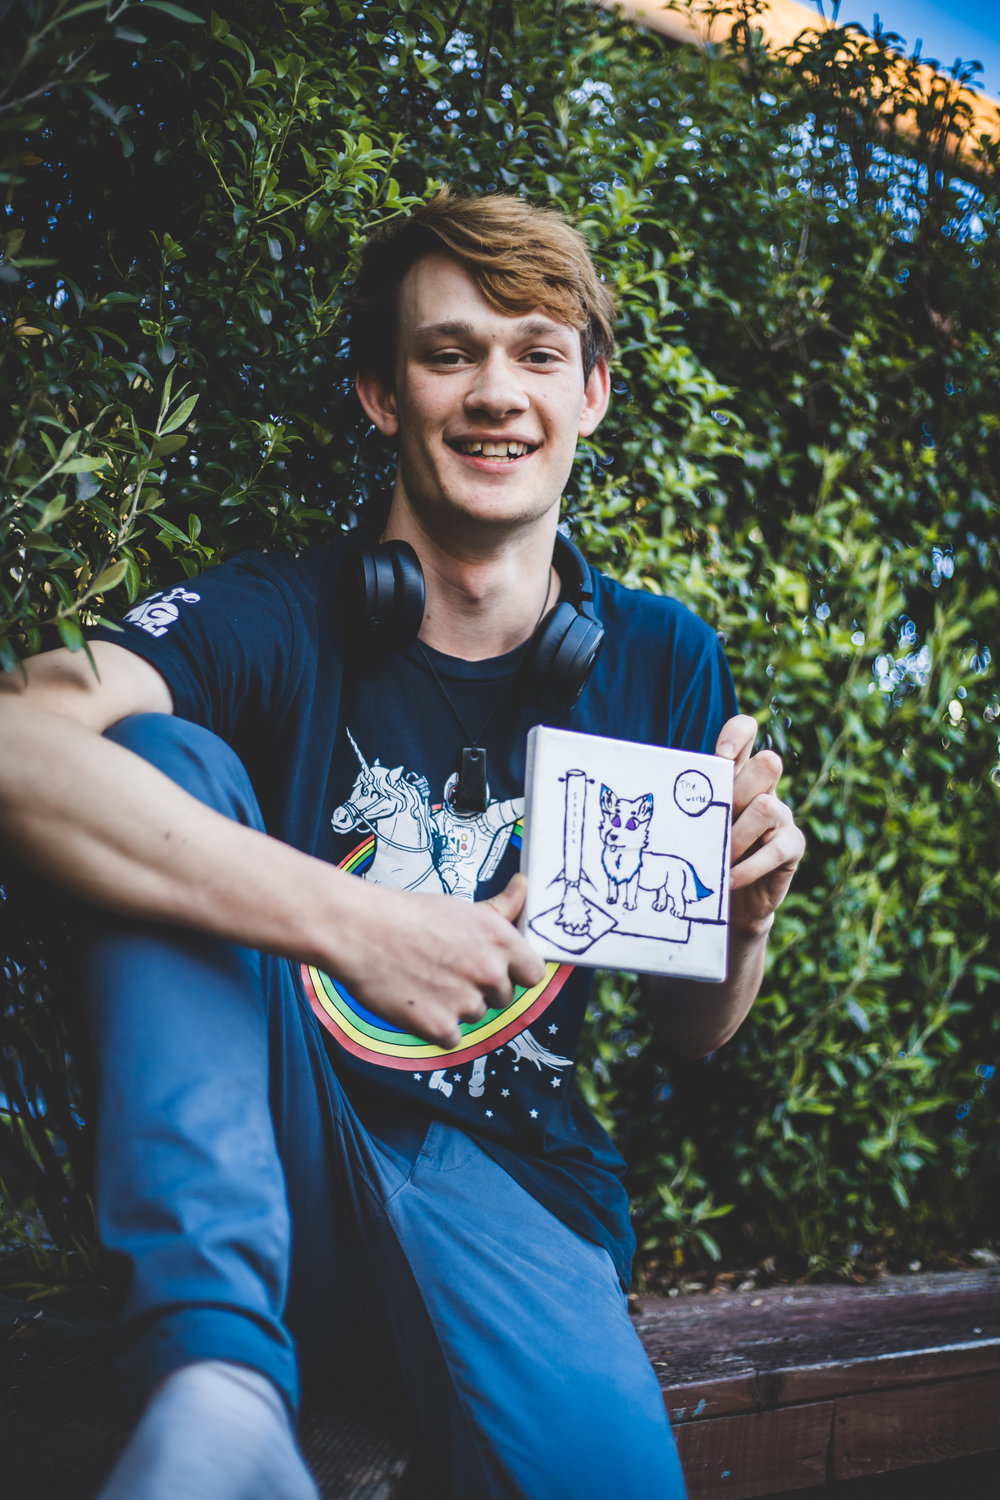 Finnian Logan - Riley - Hi, my name is Finnian and I worked with my brother Arran and my mentor Mike to create a pollution monitoring system. This system was based of Arduino hardware and was coded in C++. Everything we made was and now is open-source and is on our website here https://healthy-cities.github.io/ this is where we have a 3D printable model, code and a hardware list.In 2019 I will be starting my bachelor degree in computing systems with a major in intelligent systems and im looking forward to it. Thanks for reading and good luck with any future projects/study.